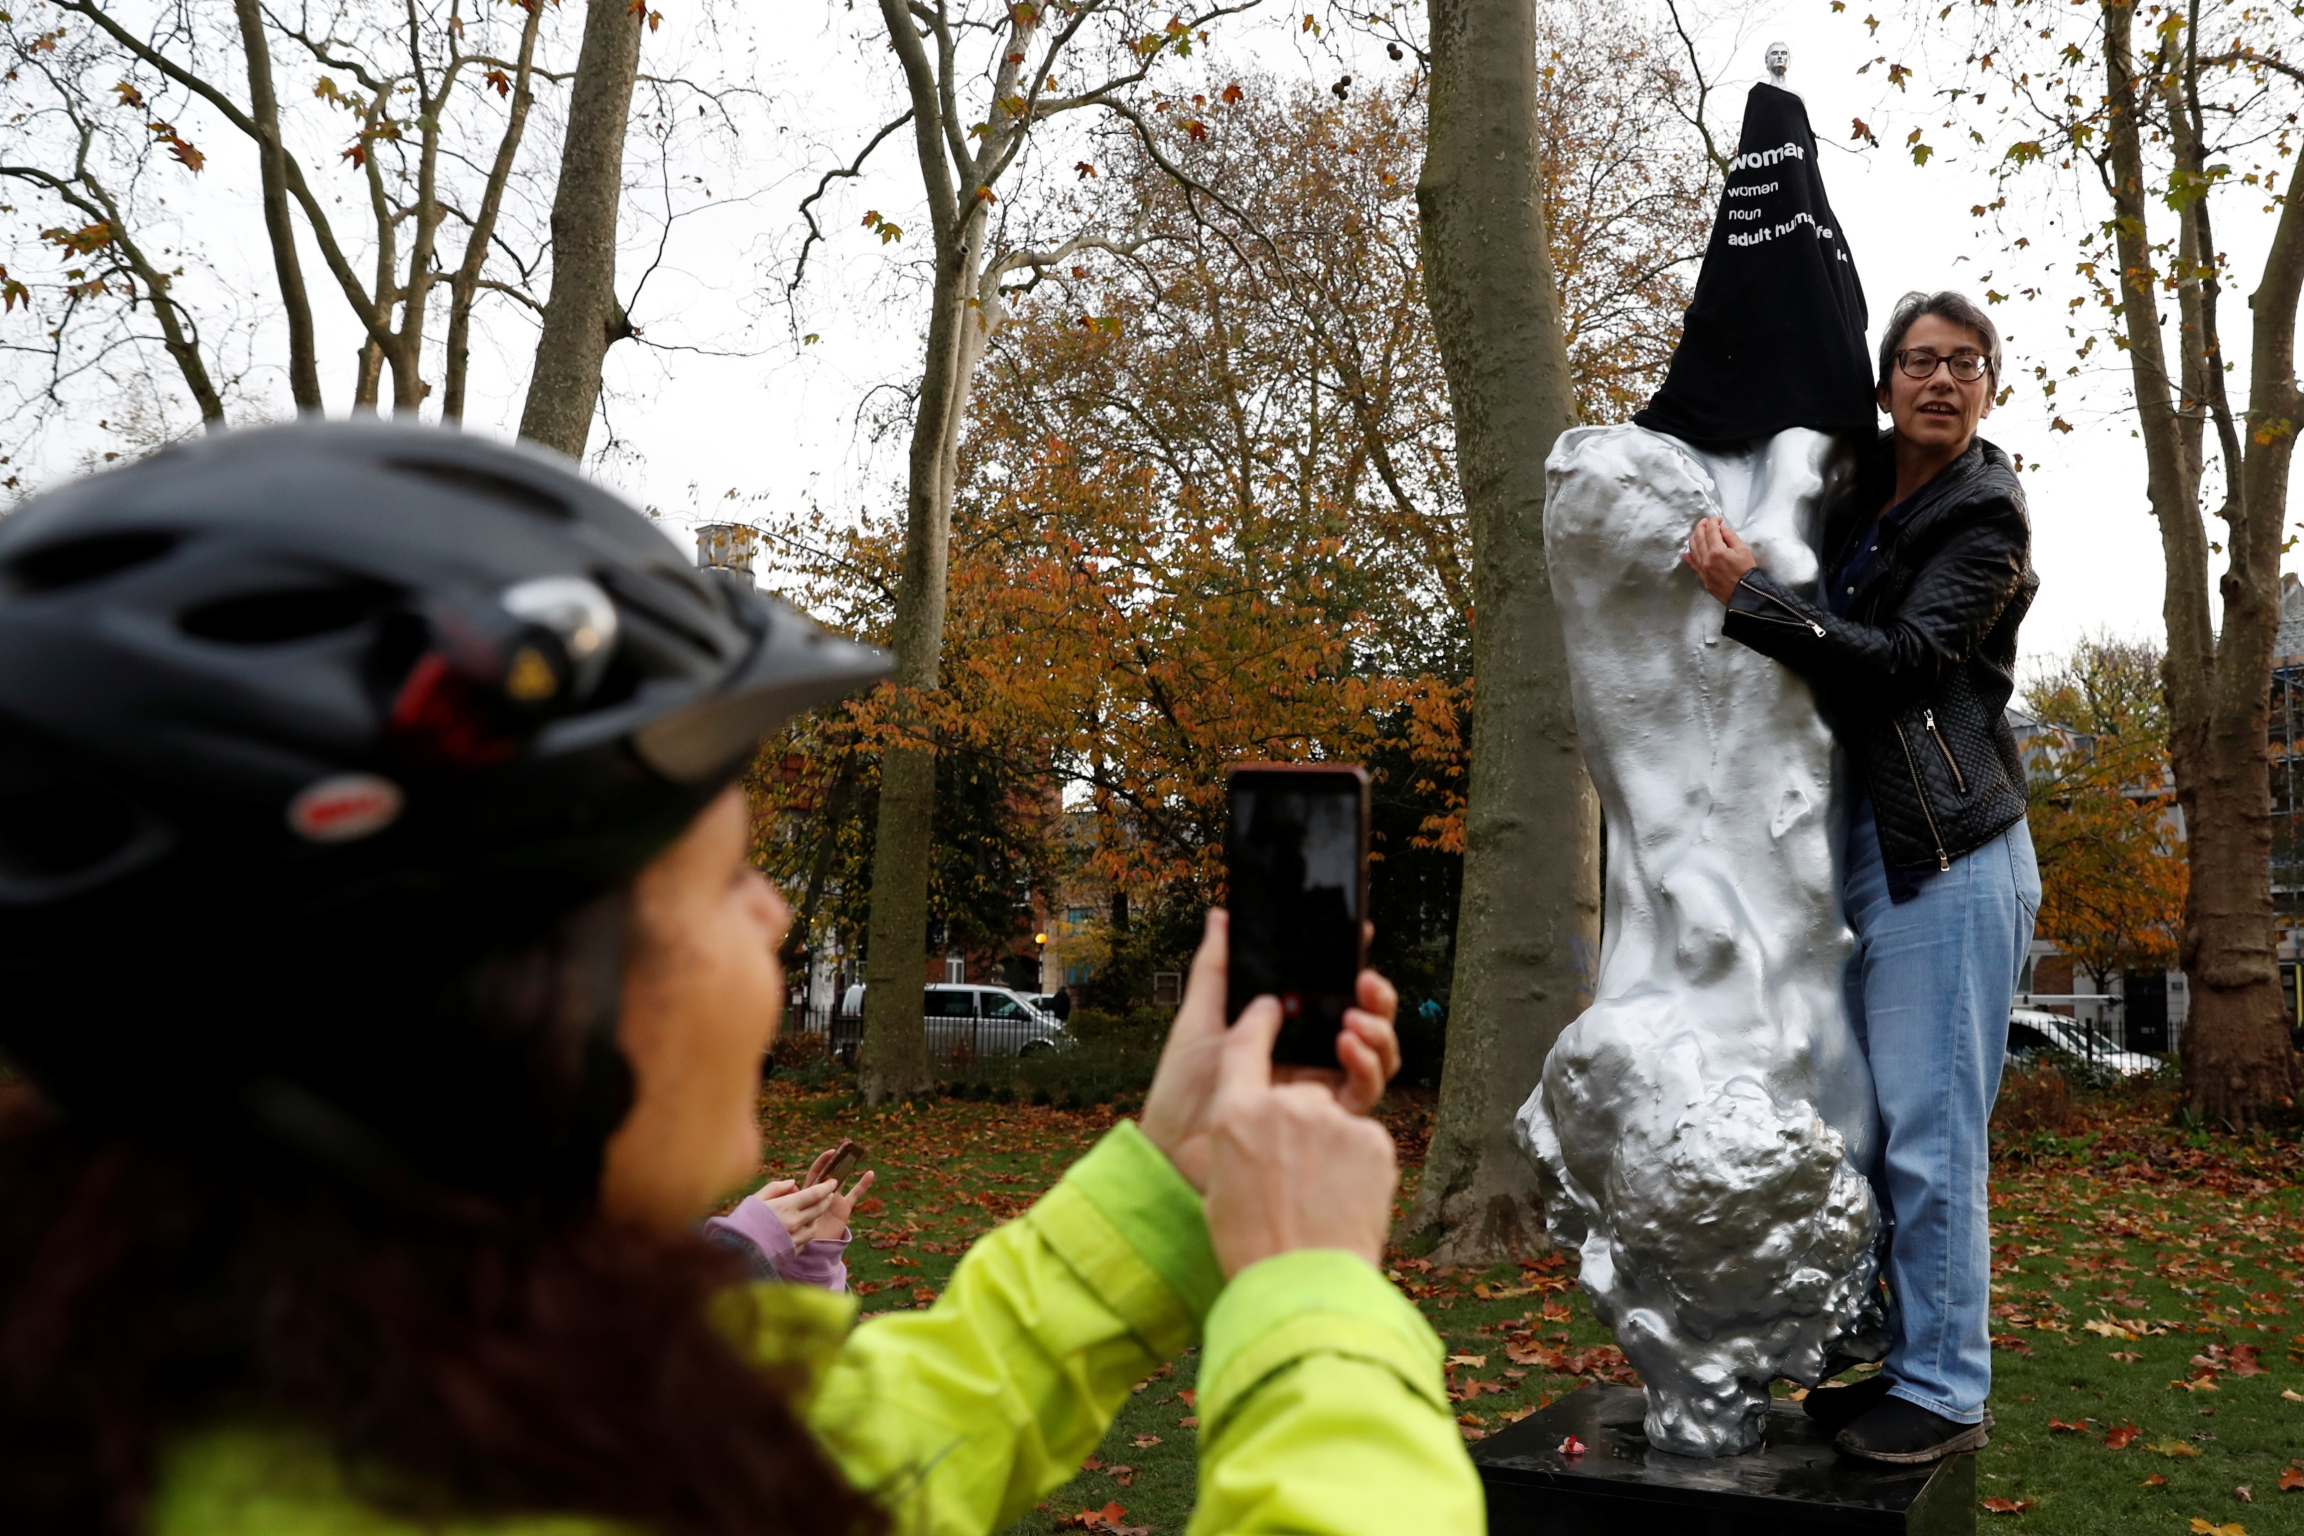 A protester covers with a T-shirt the Mary Wollstonecraft statue by artist Maggi Hambling, in Newington Green, London, Britain, Nov. 11, 2020.